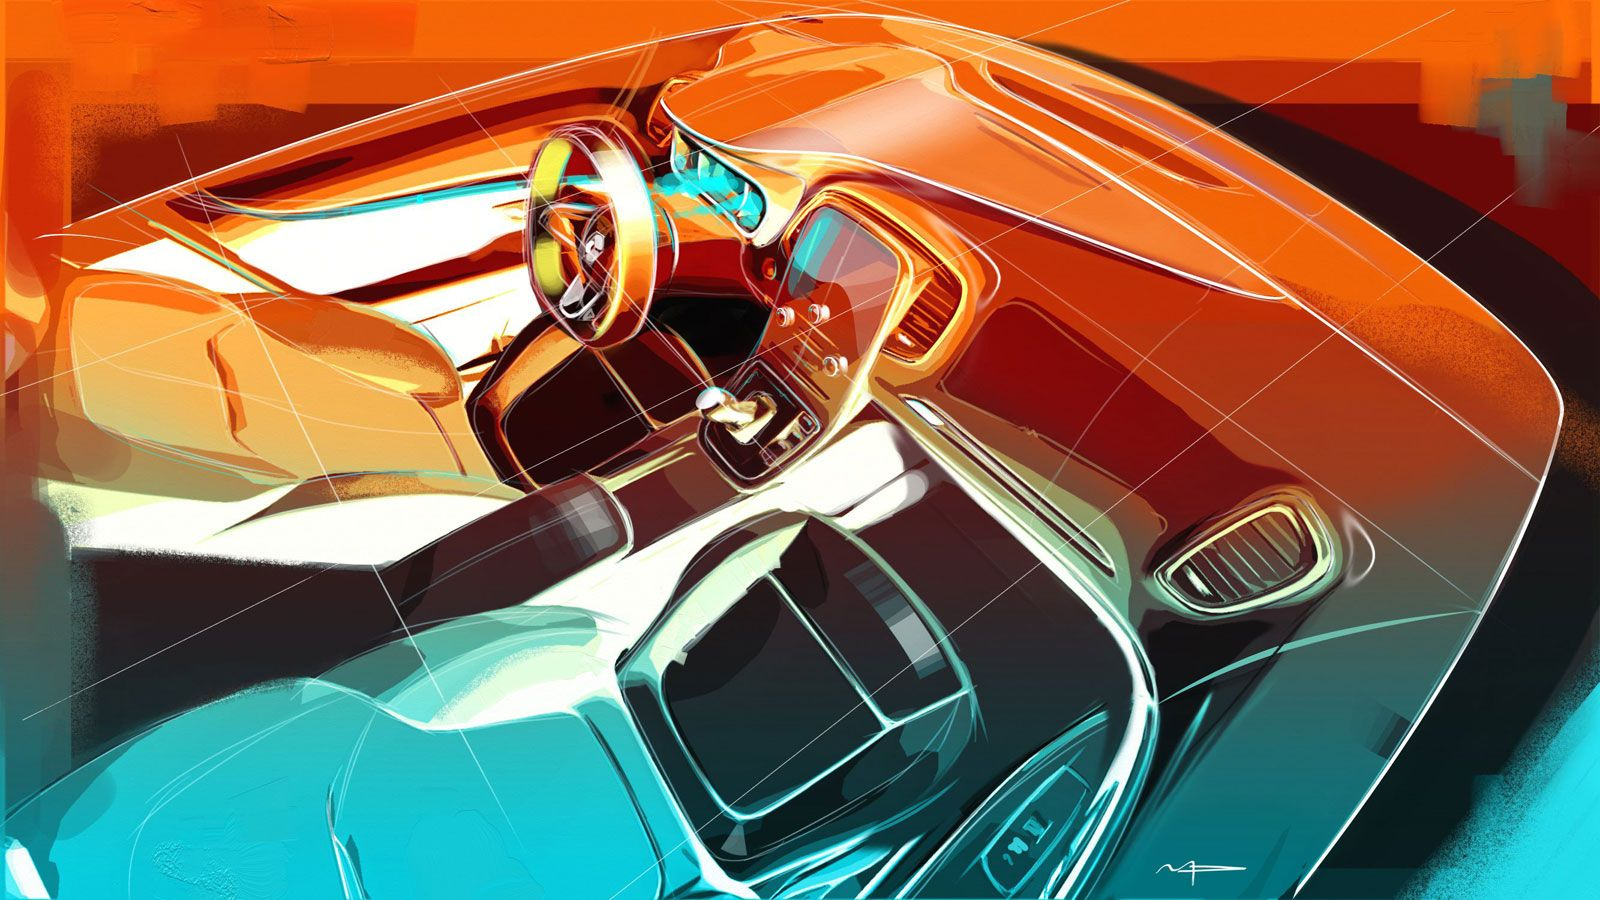 03-New-Renault-Scenic-Interior-Design-Sketch-Render-by-Maxime-Pinol ...